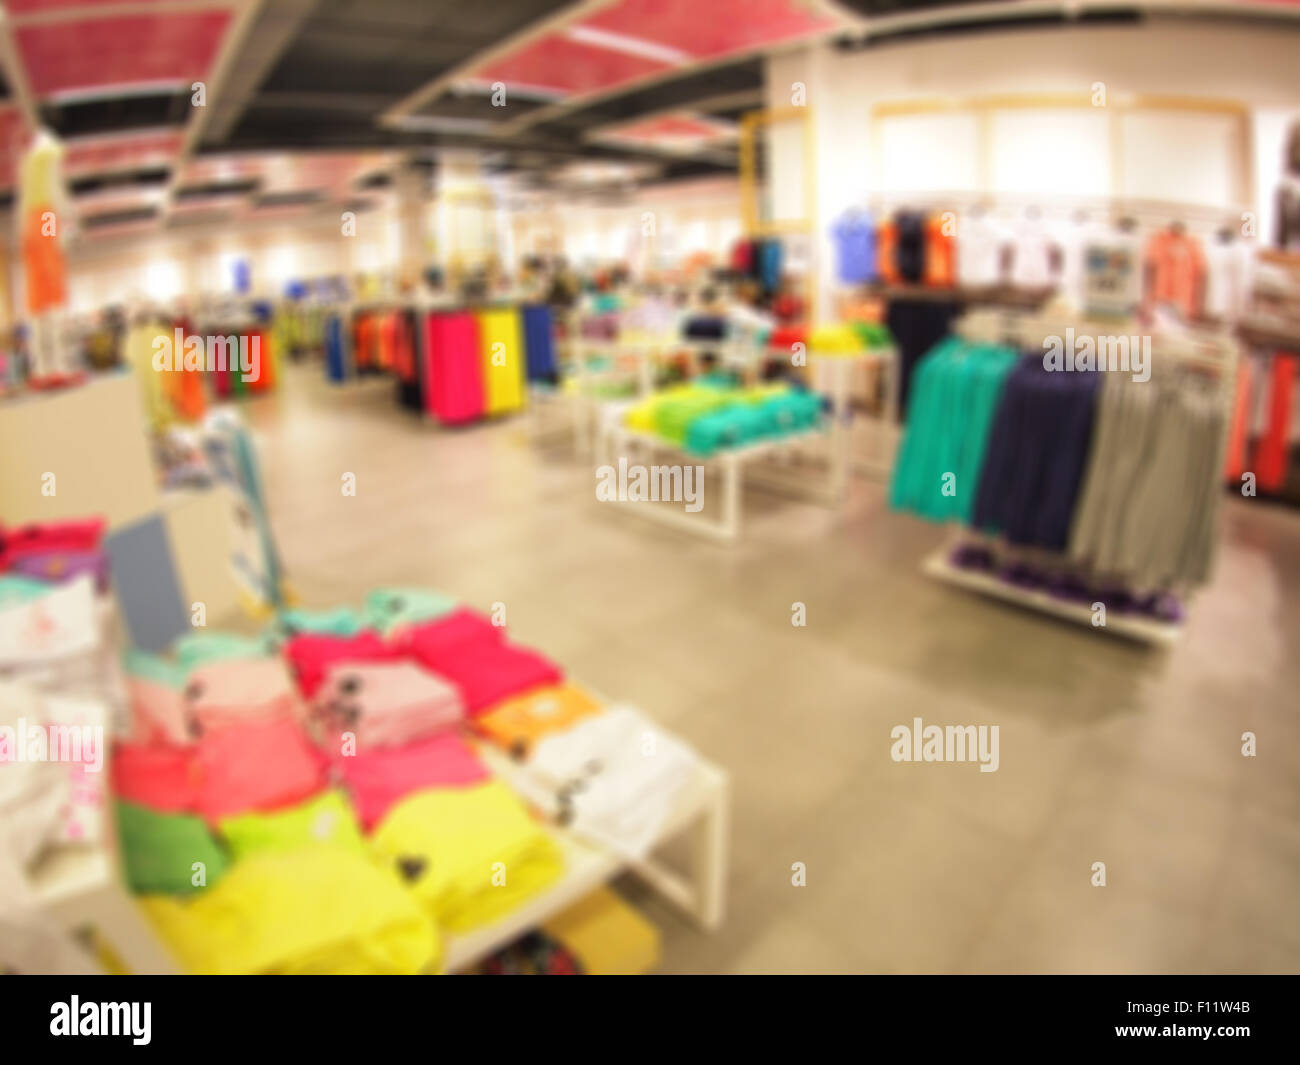 Defocused And Blurry Image Of The Interior Of A Clothing Store With Wide  Angle Distortion View Was Blurred For Use As A Backgrou